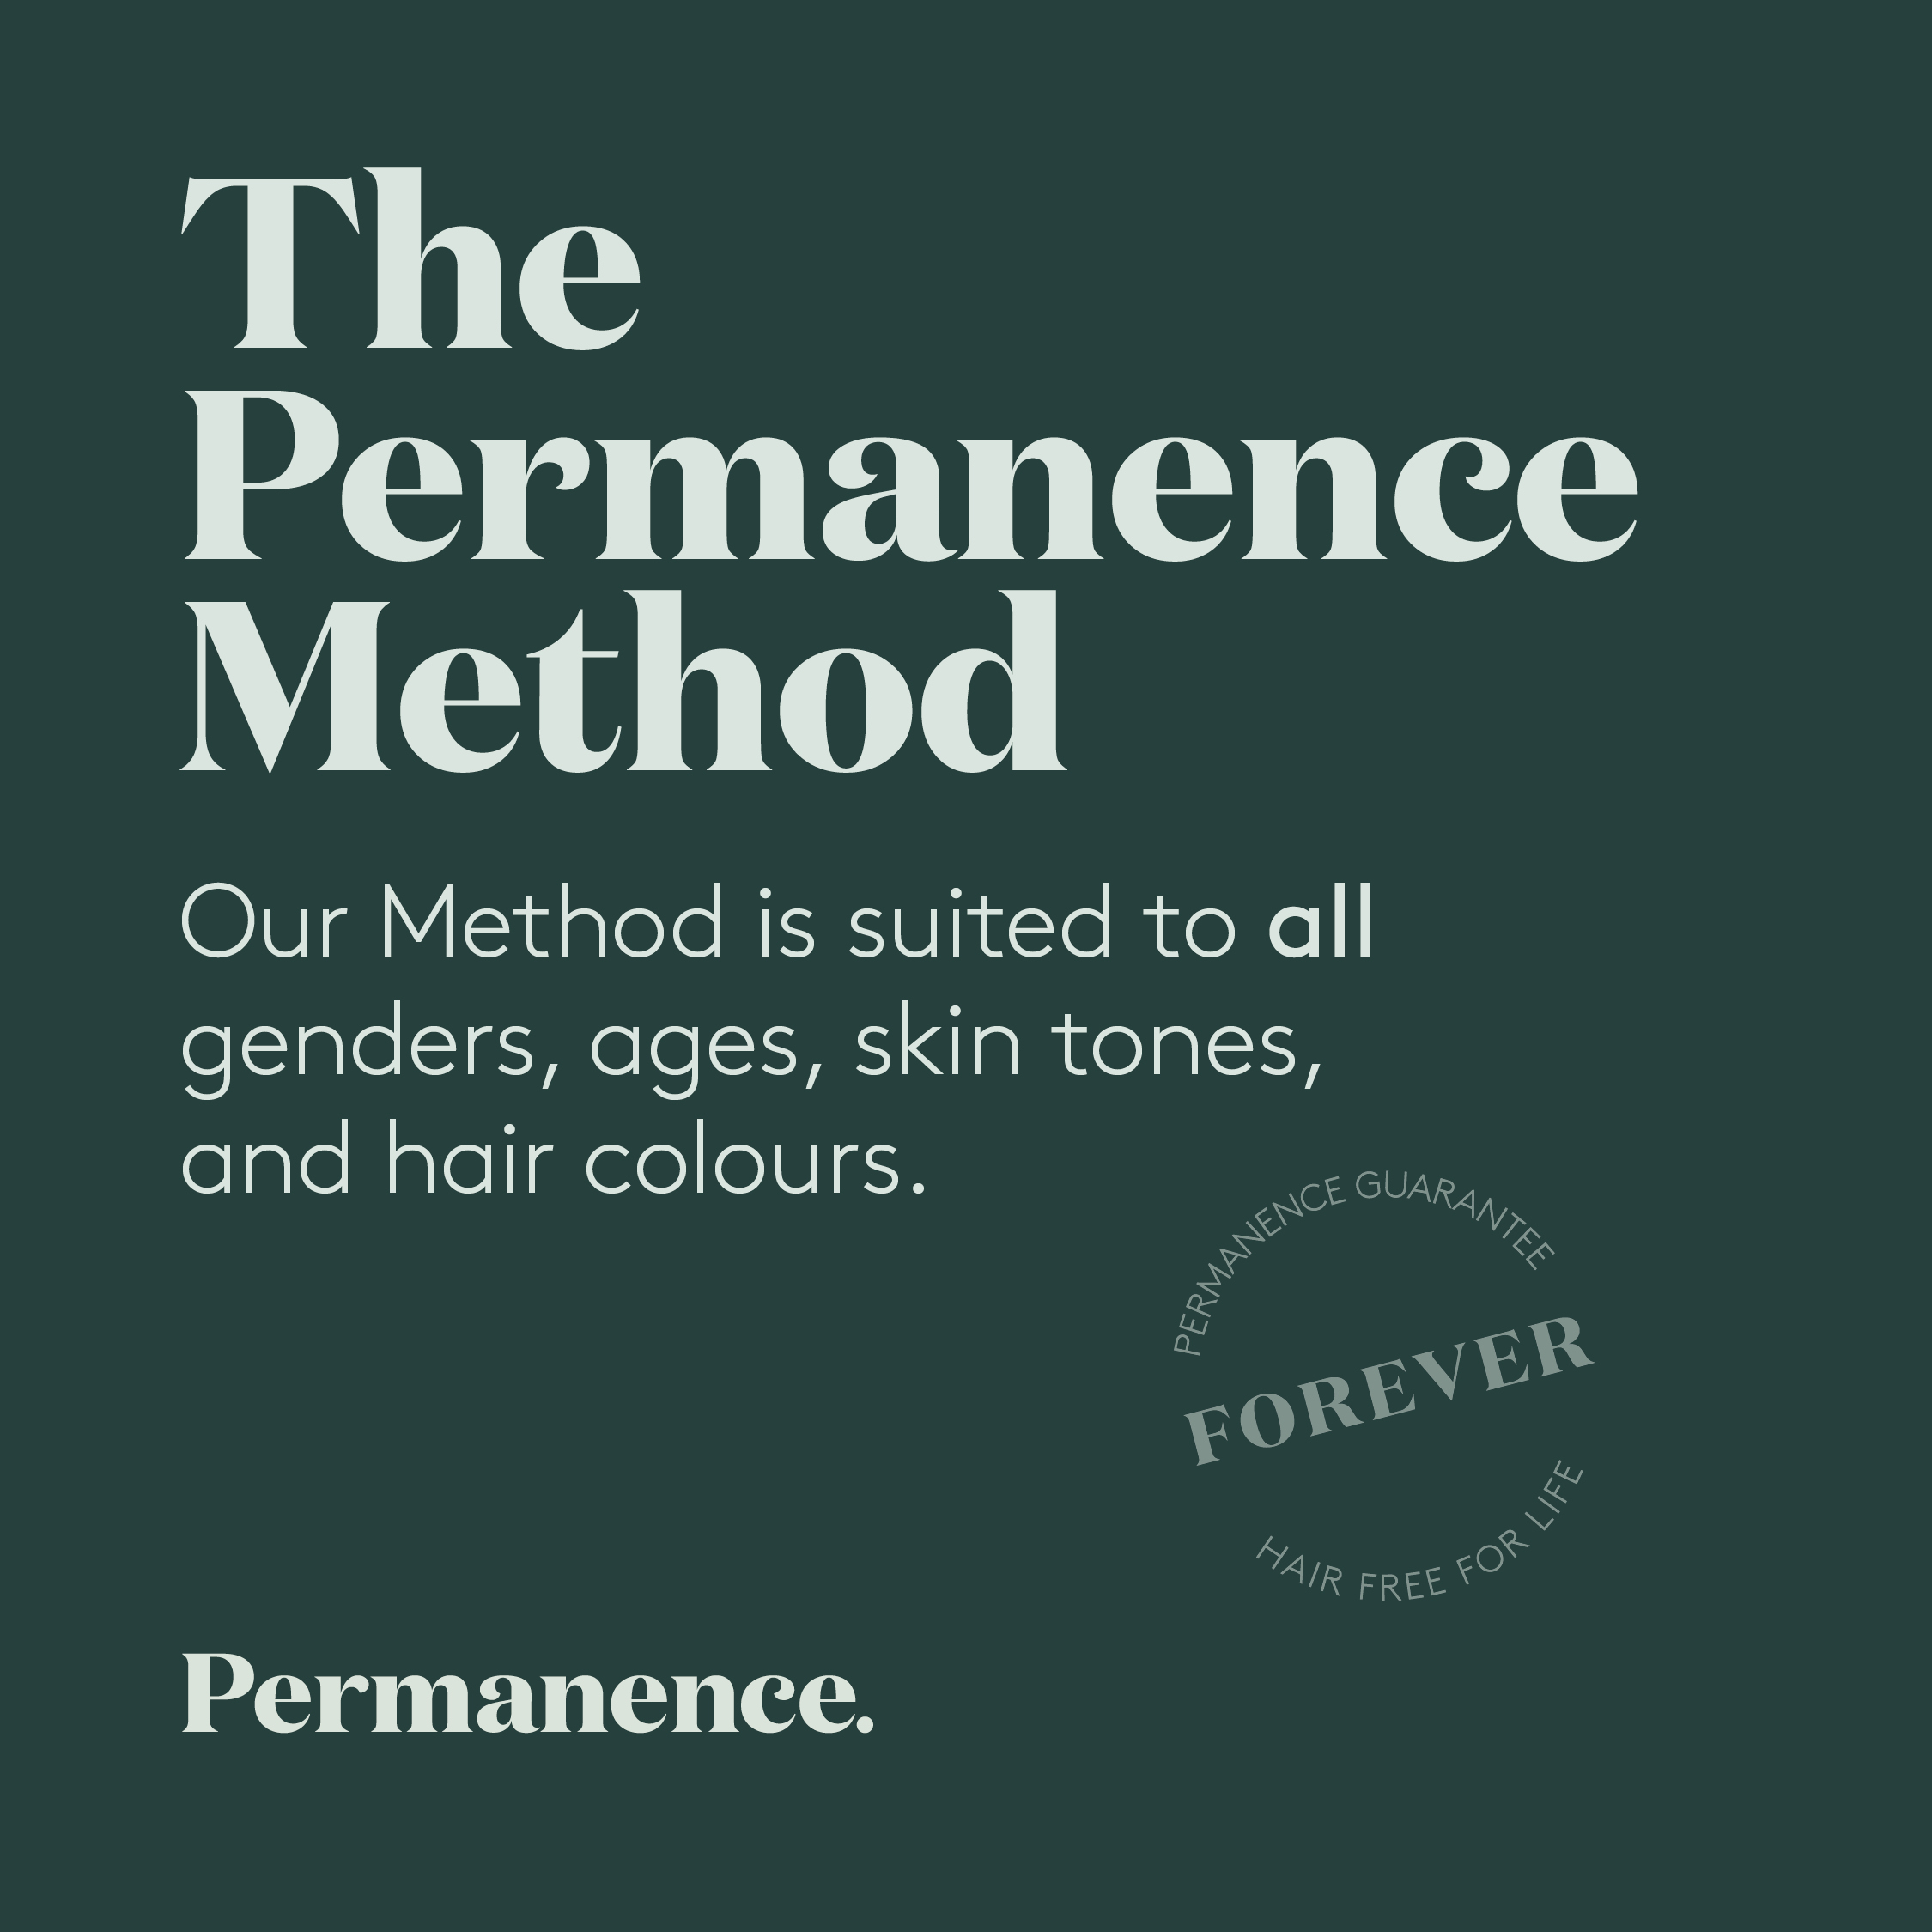 Permanence - The Permanence Method 01